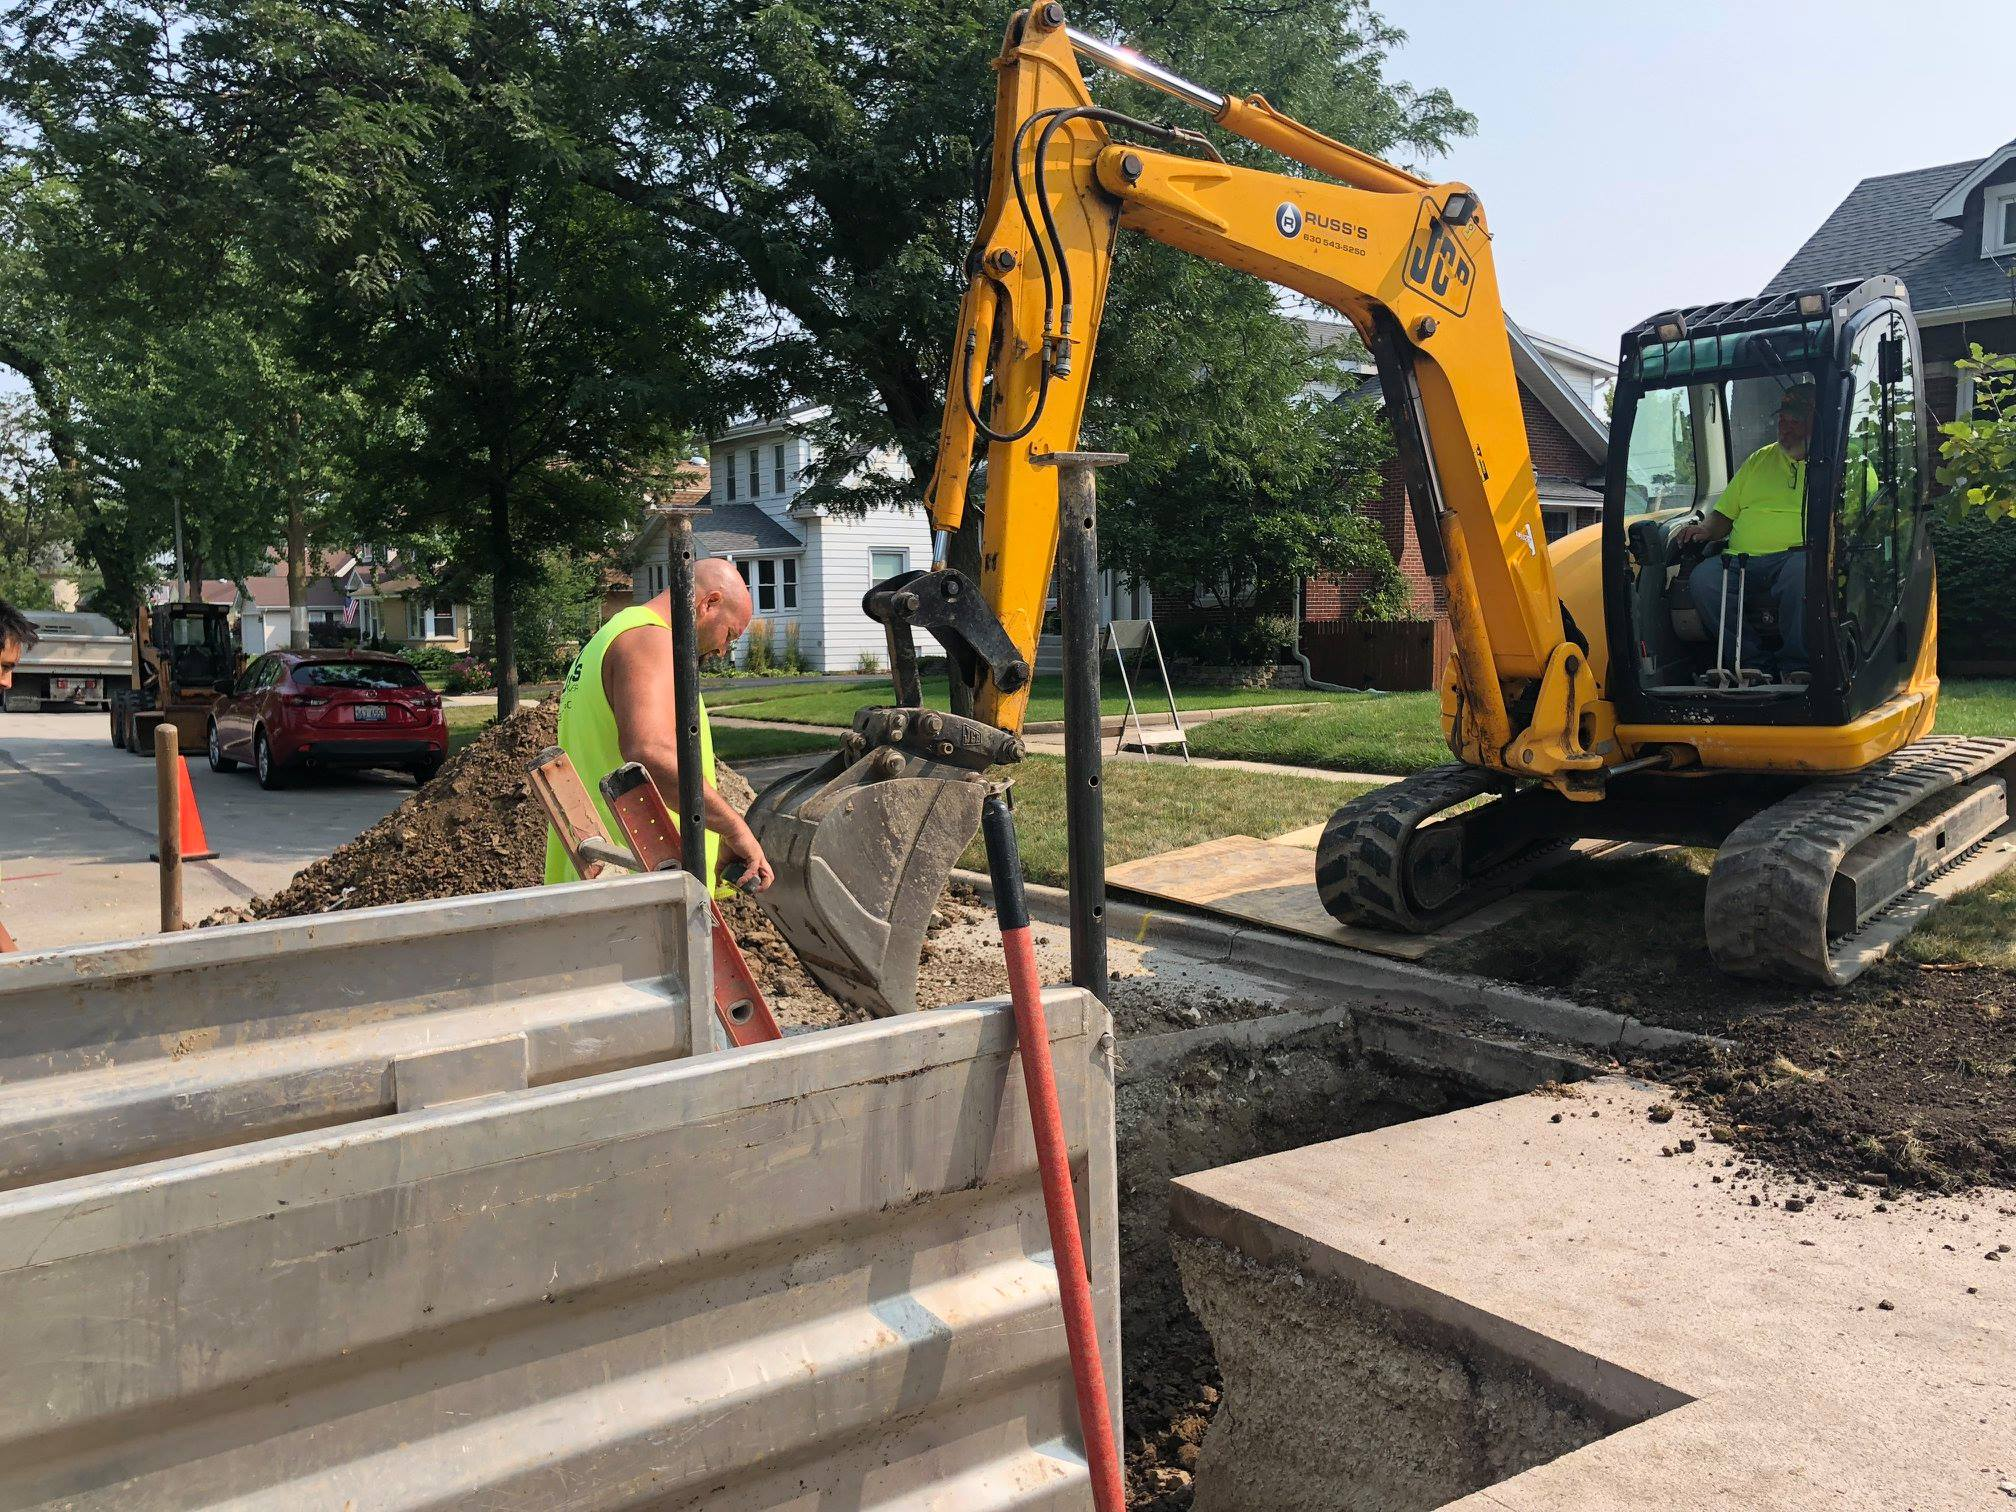 Addison plumbing job in residential street with excavator and Russ's team